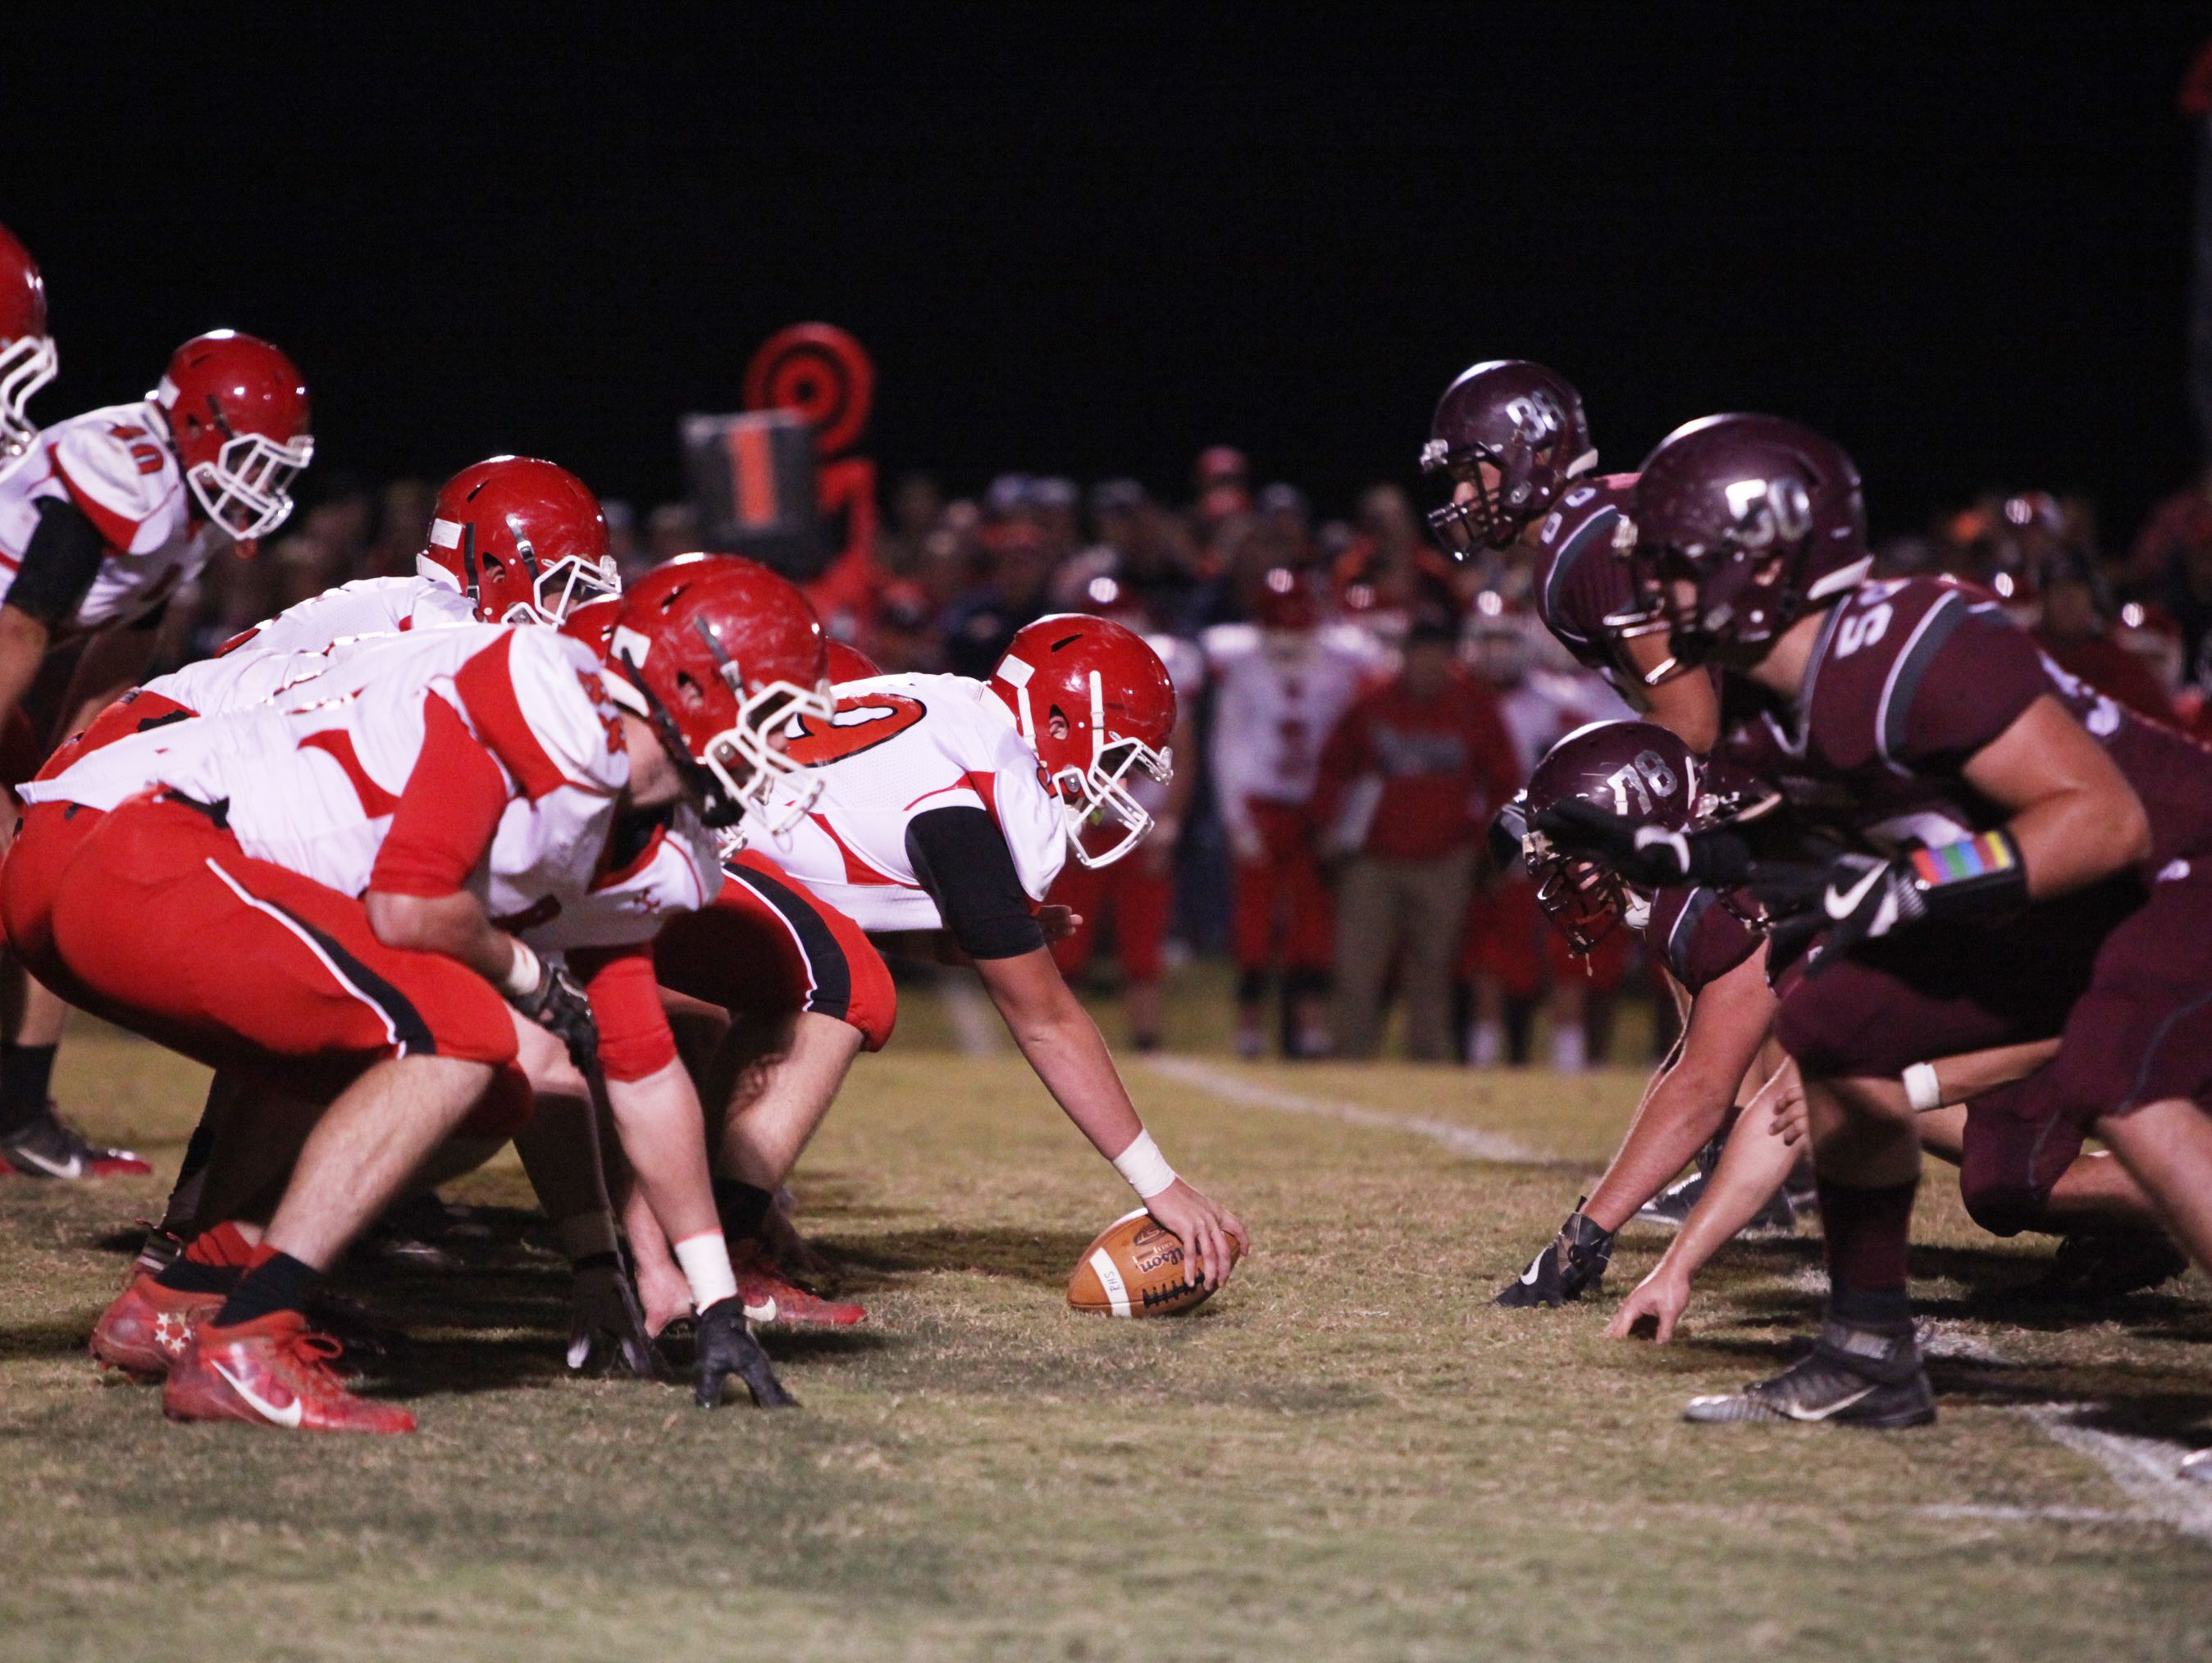 Riverheads, ;eft and Stuarts Draft, right, face tough opponents Friday night in the second round of the VHSL regional playoffs.